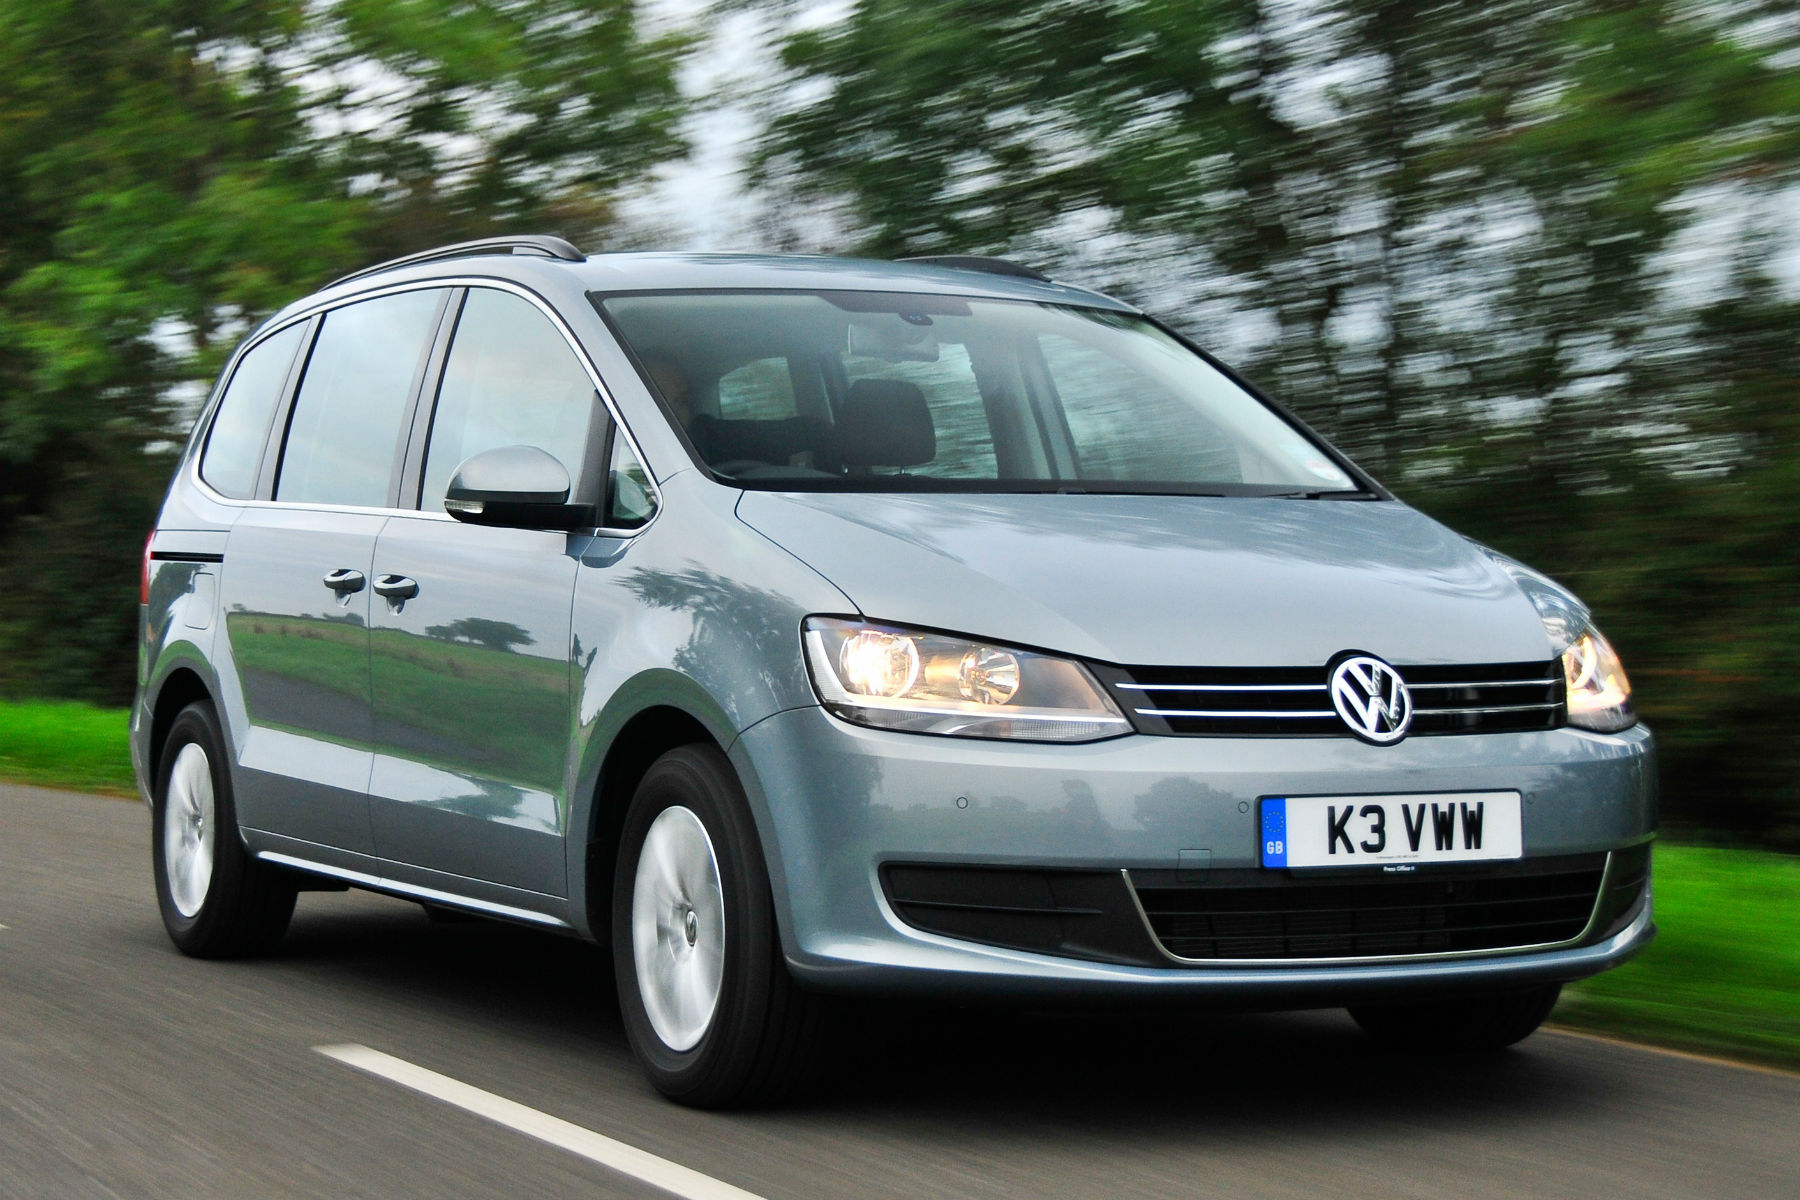 UK Volkswagen sales down 20% in November 2015